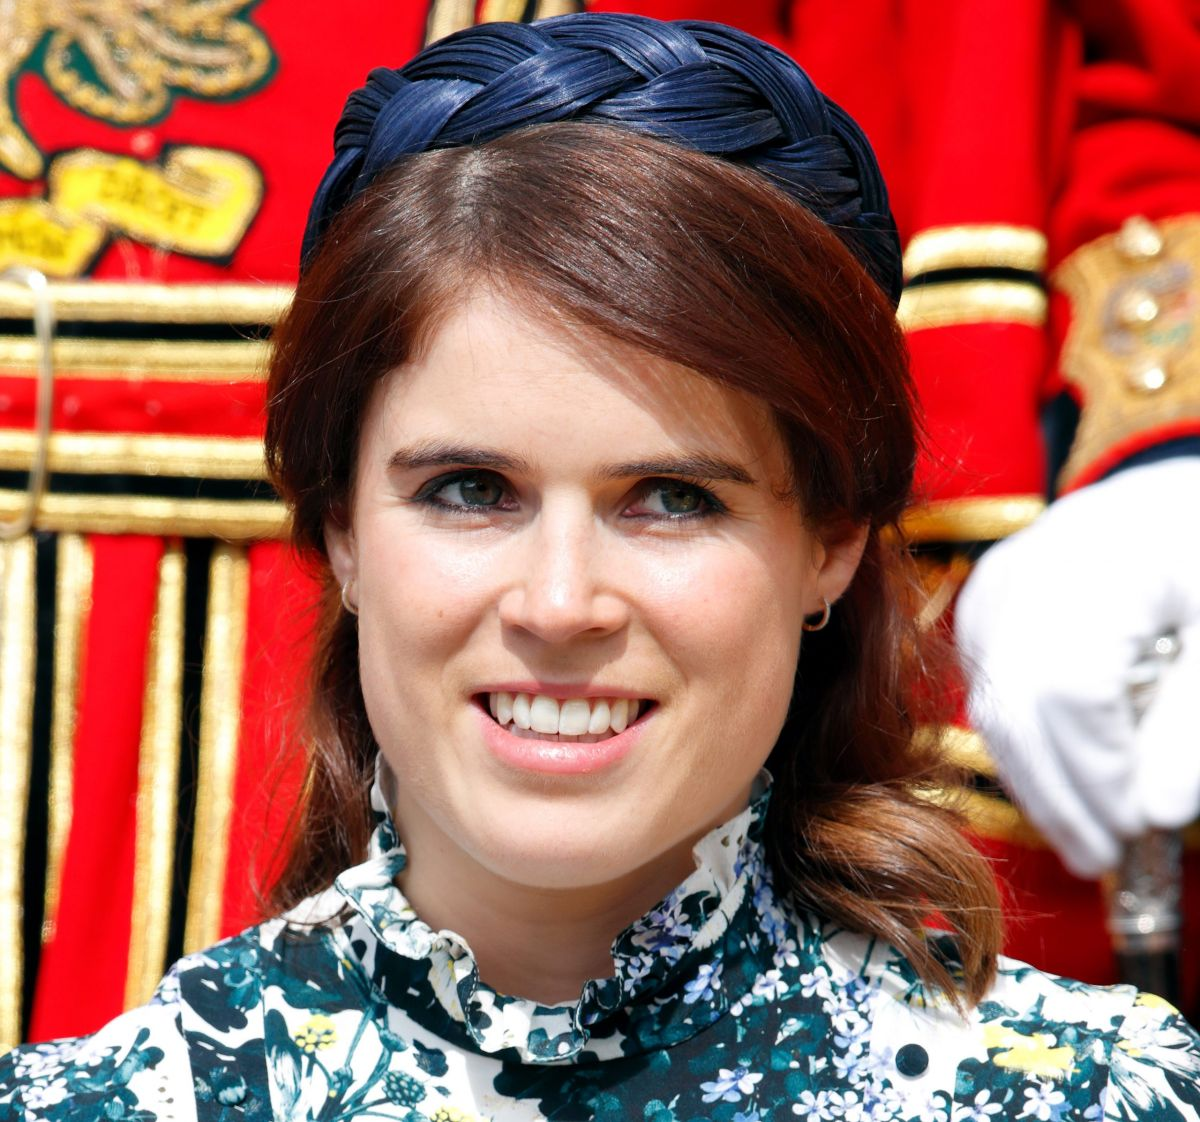 Princess Eugenie shares a sweet throwback photo of her and sister Beatrice